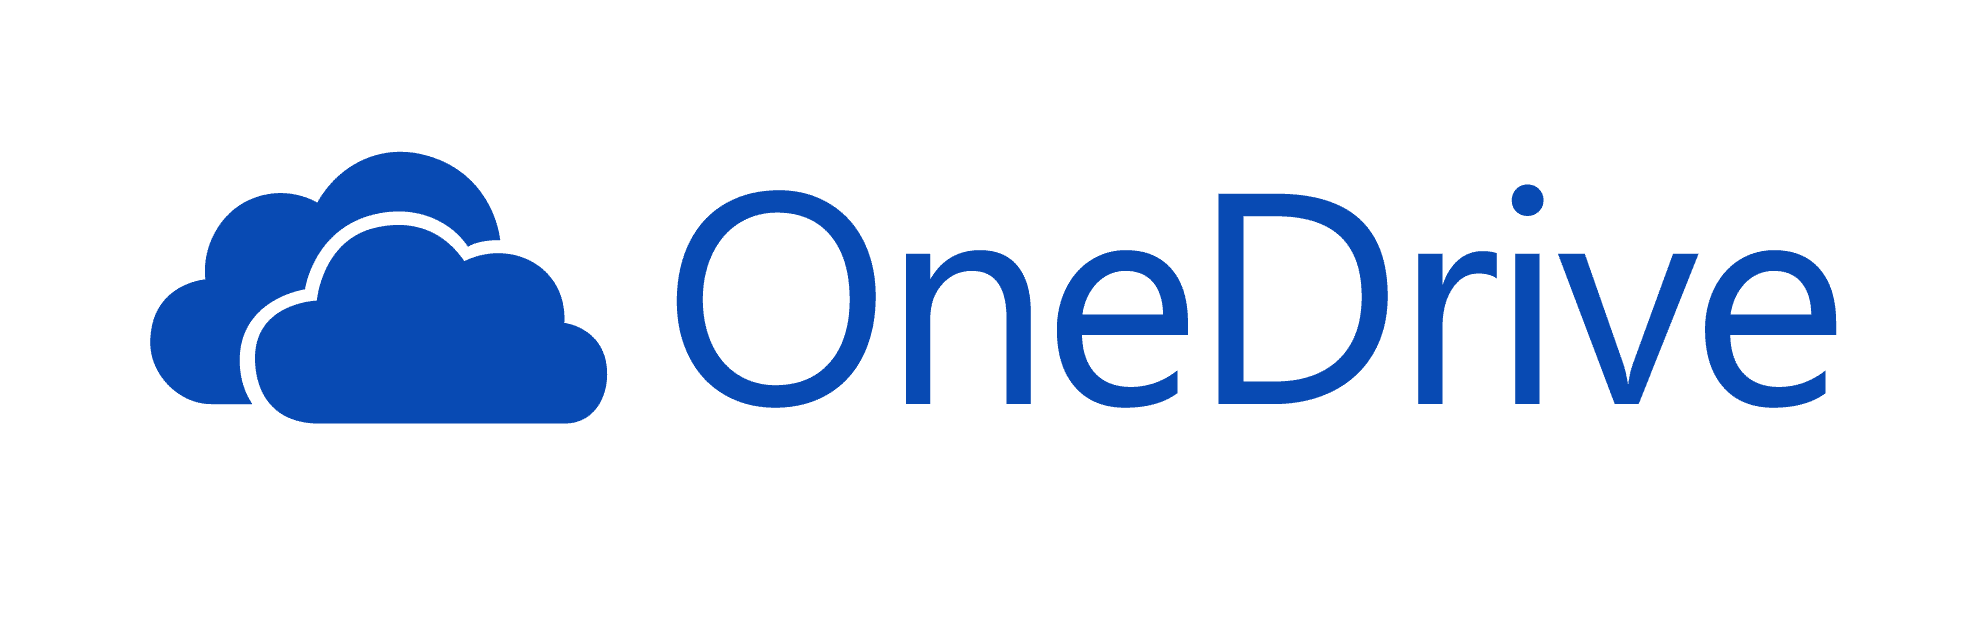 onedrive-transparent